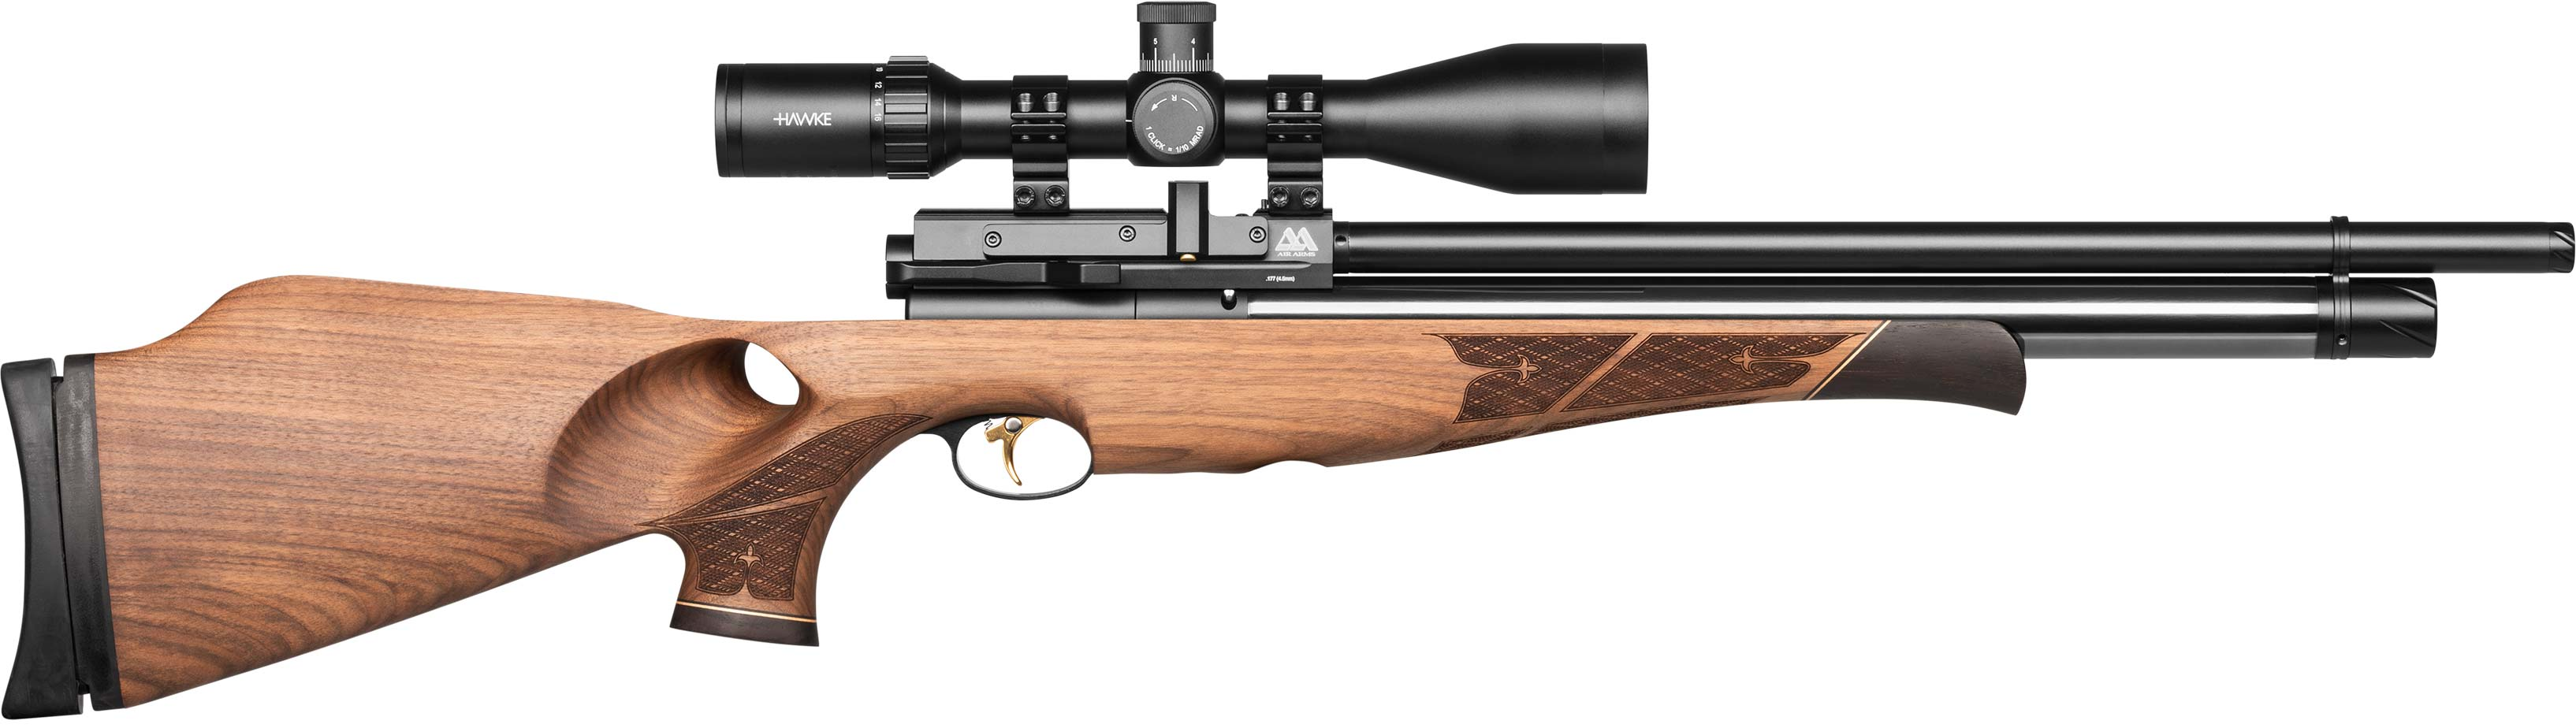 S510 Carbine Walnut Thumbhole